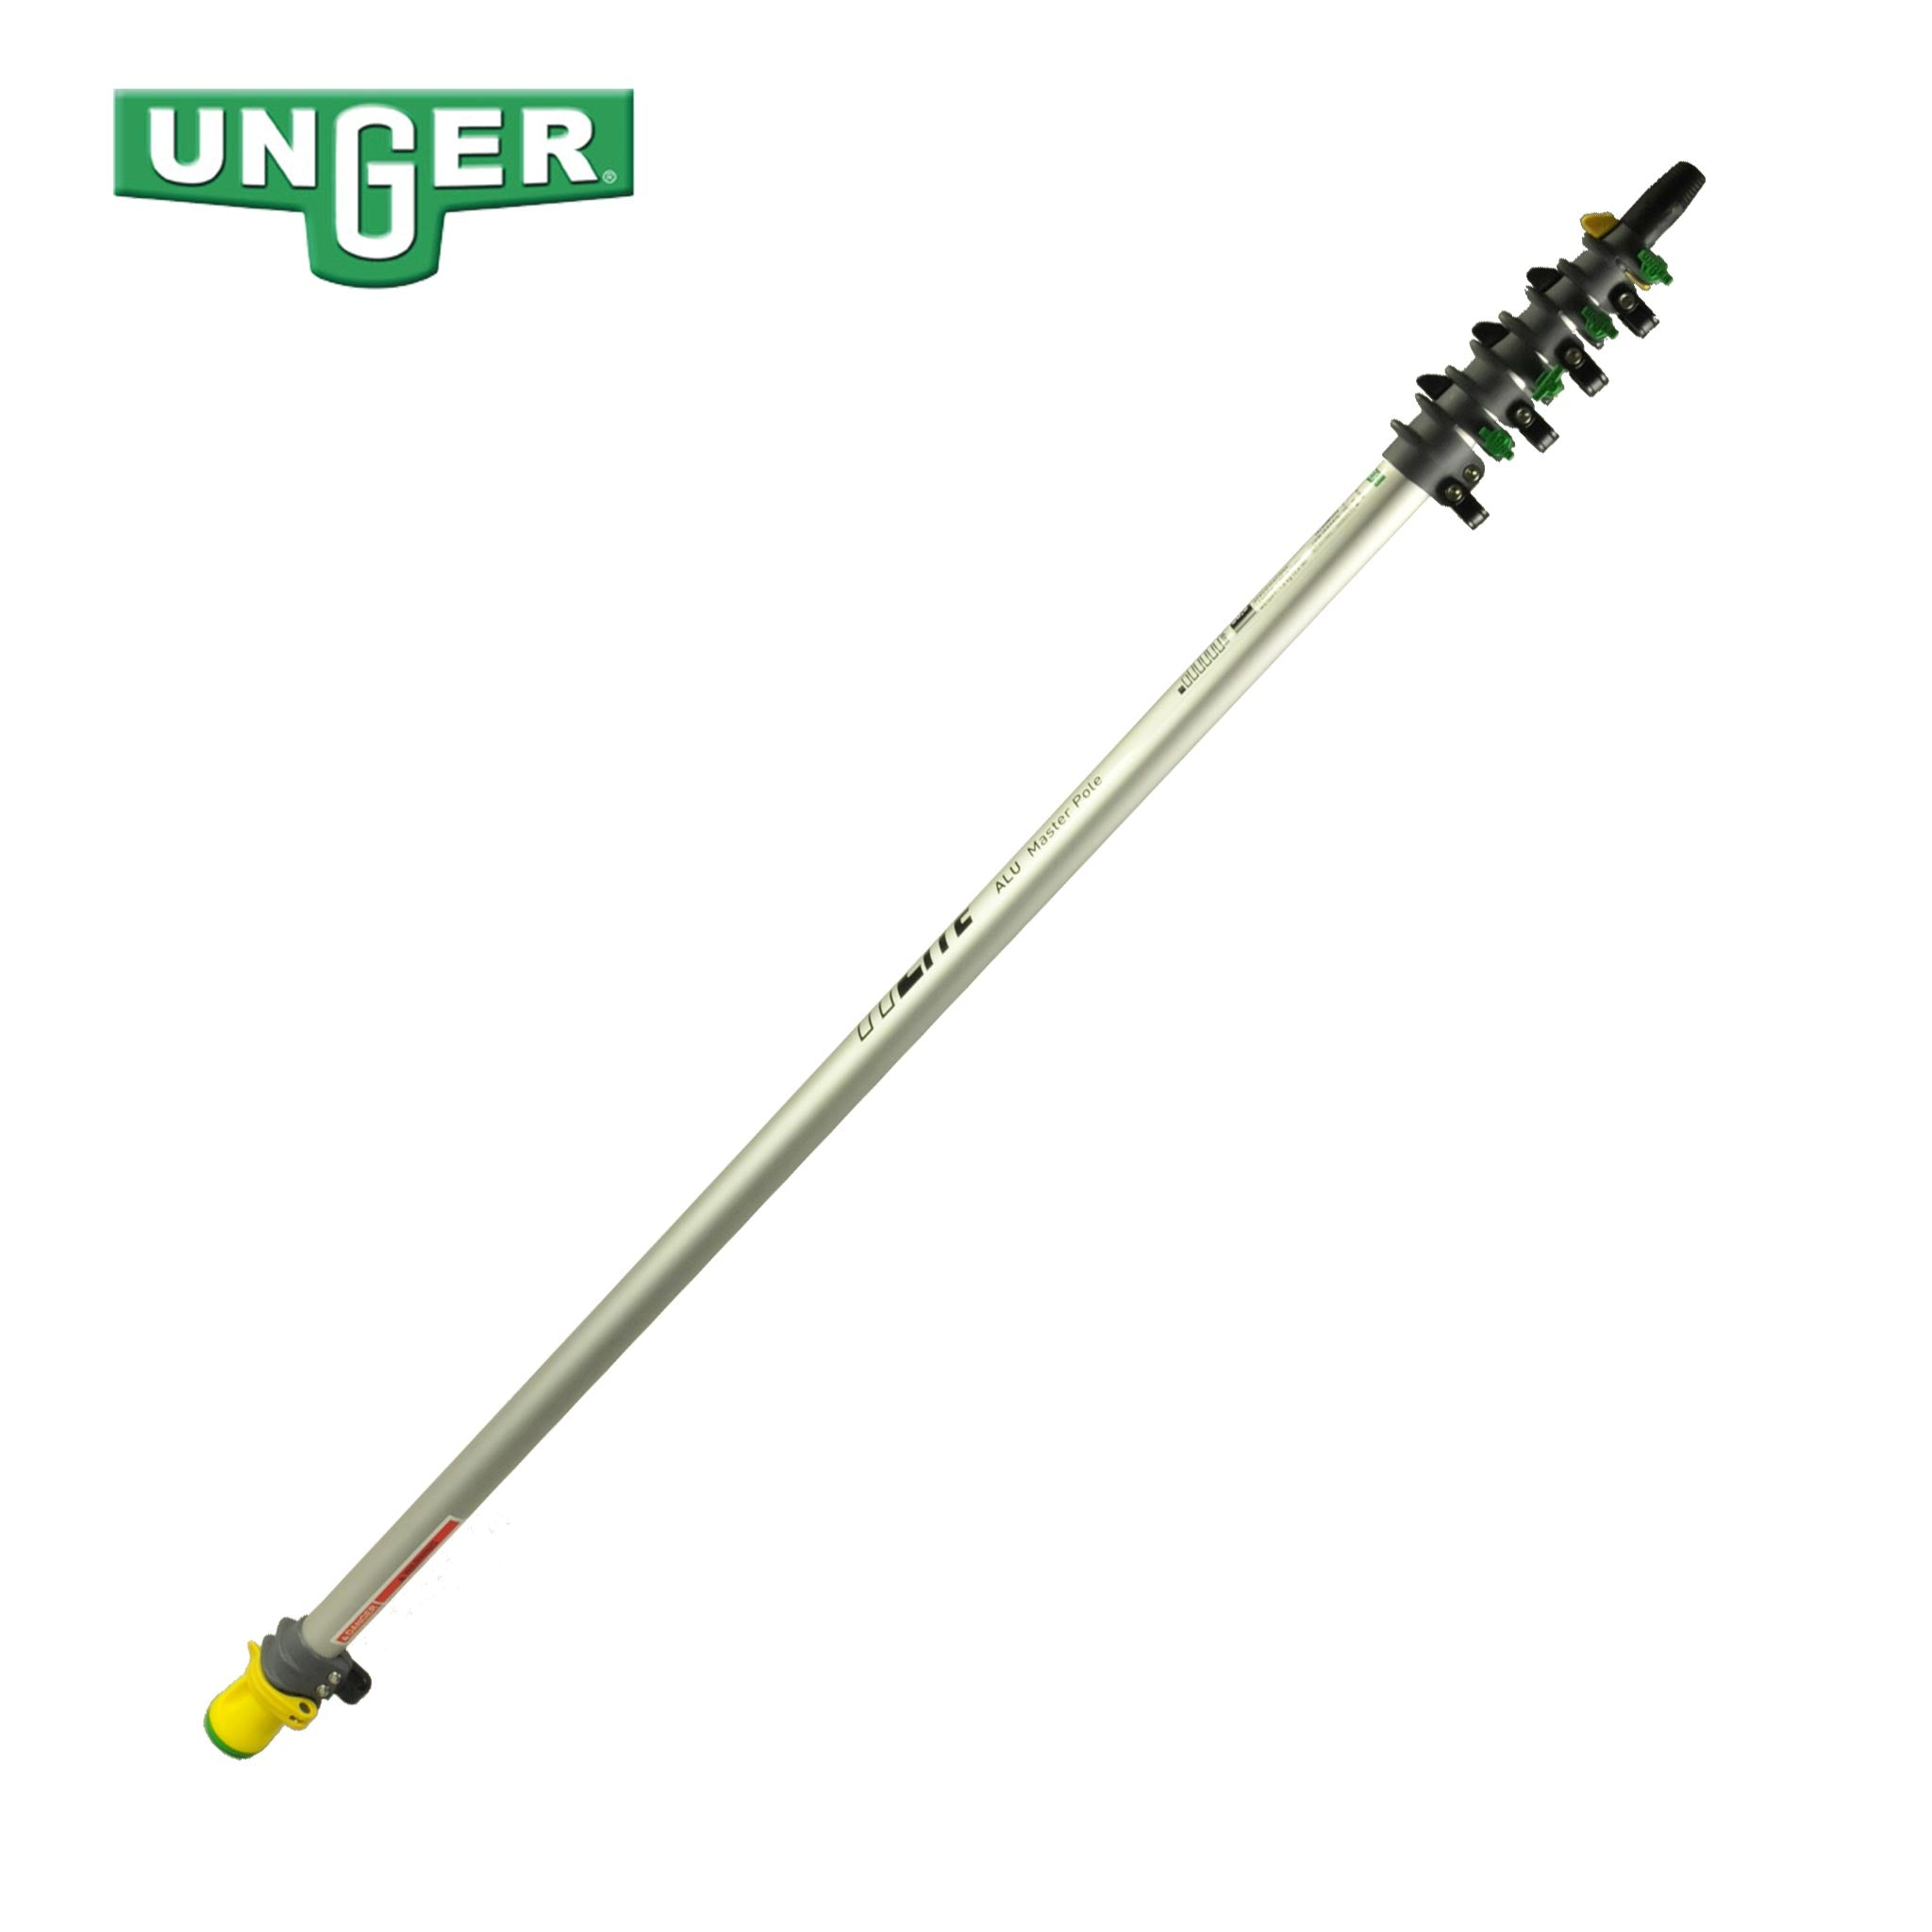 Unger nLite Connect - Alloy